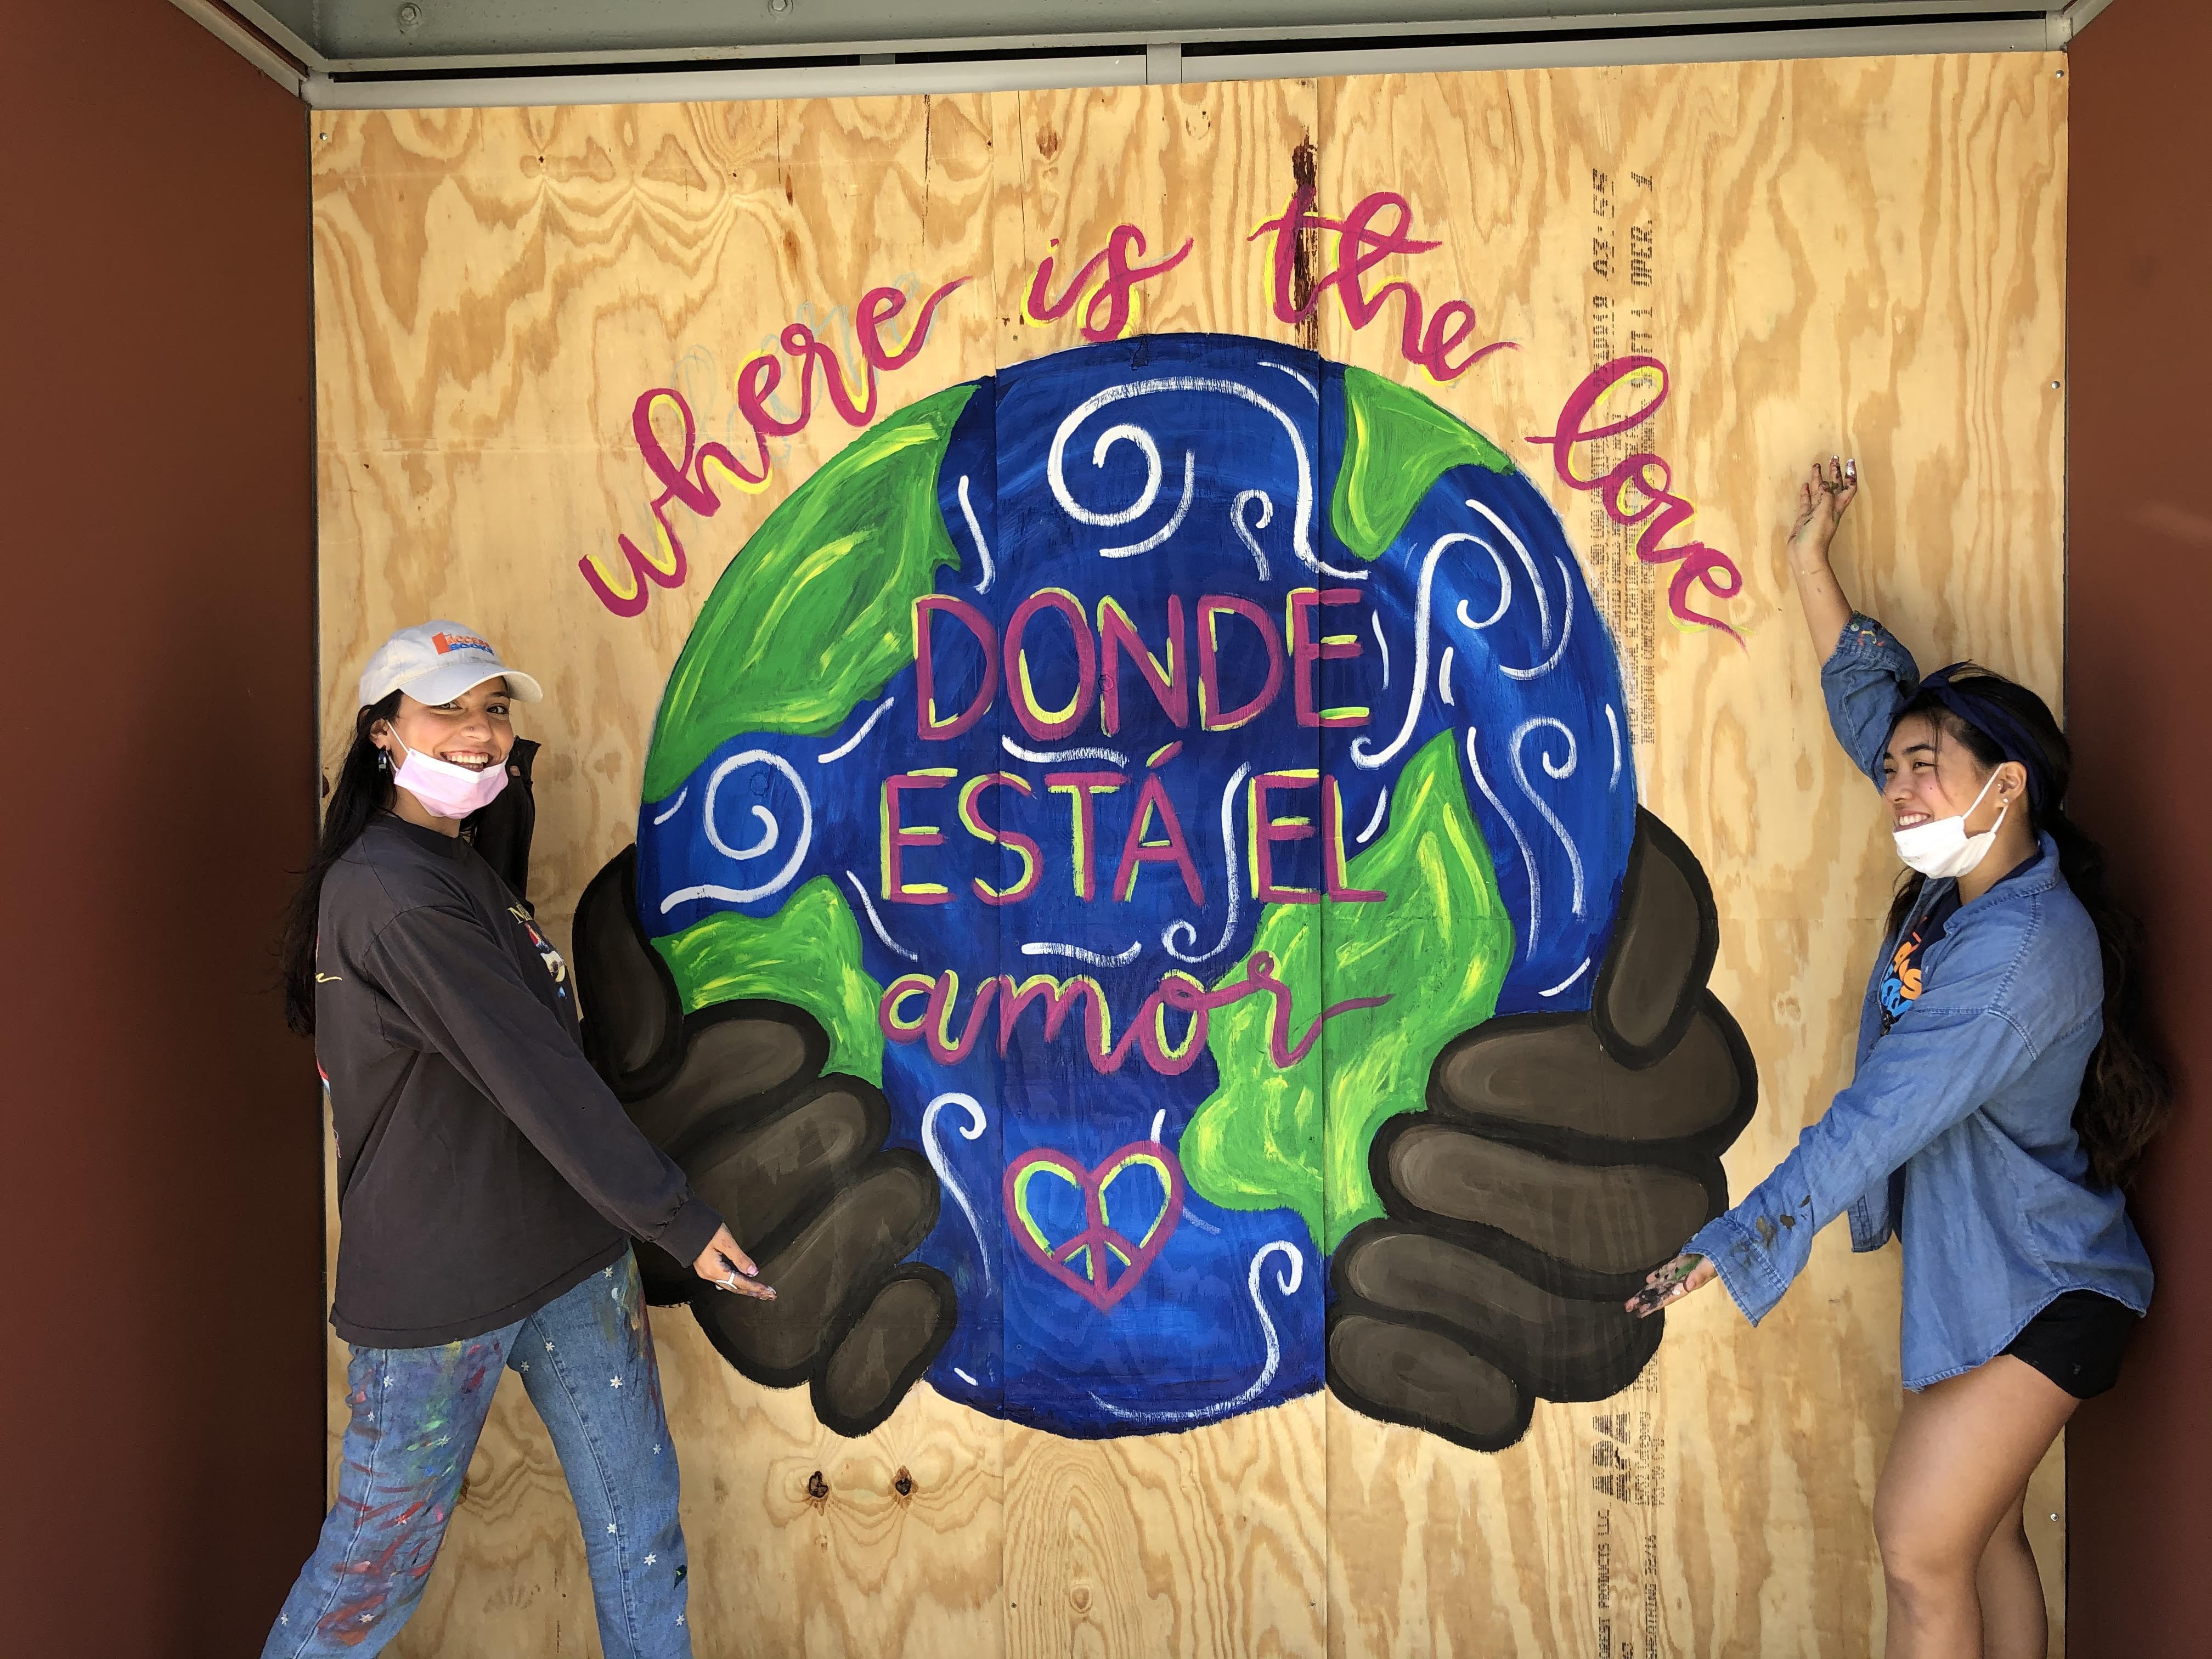 SMHS students Claire F. and Alana I. in front of a mural they created